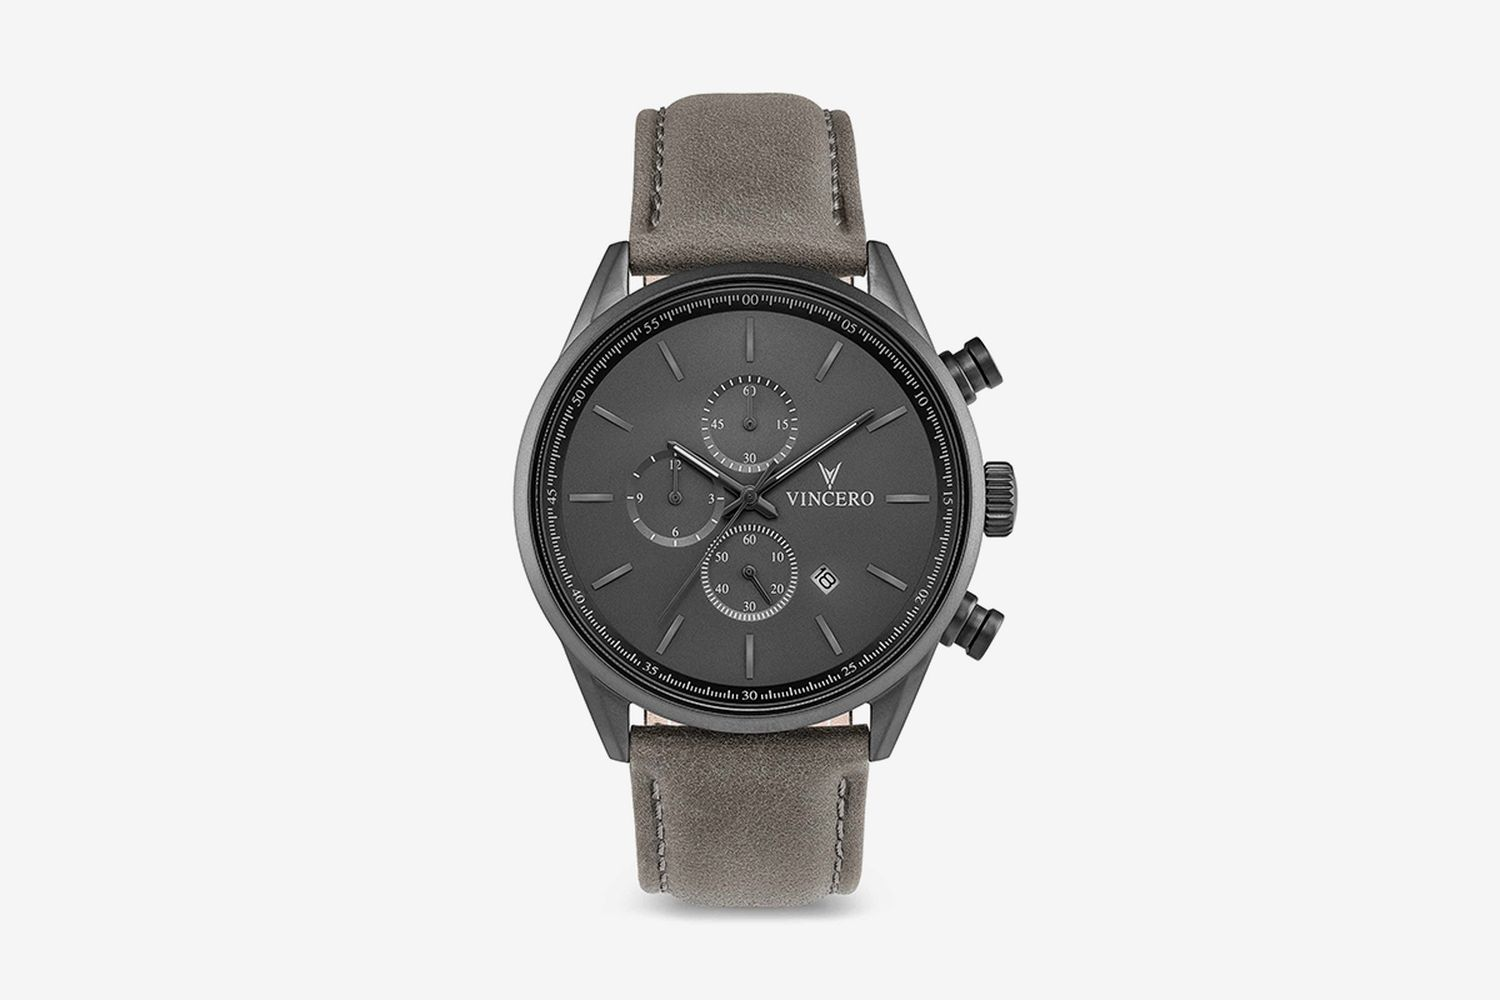 The Chrono S